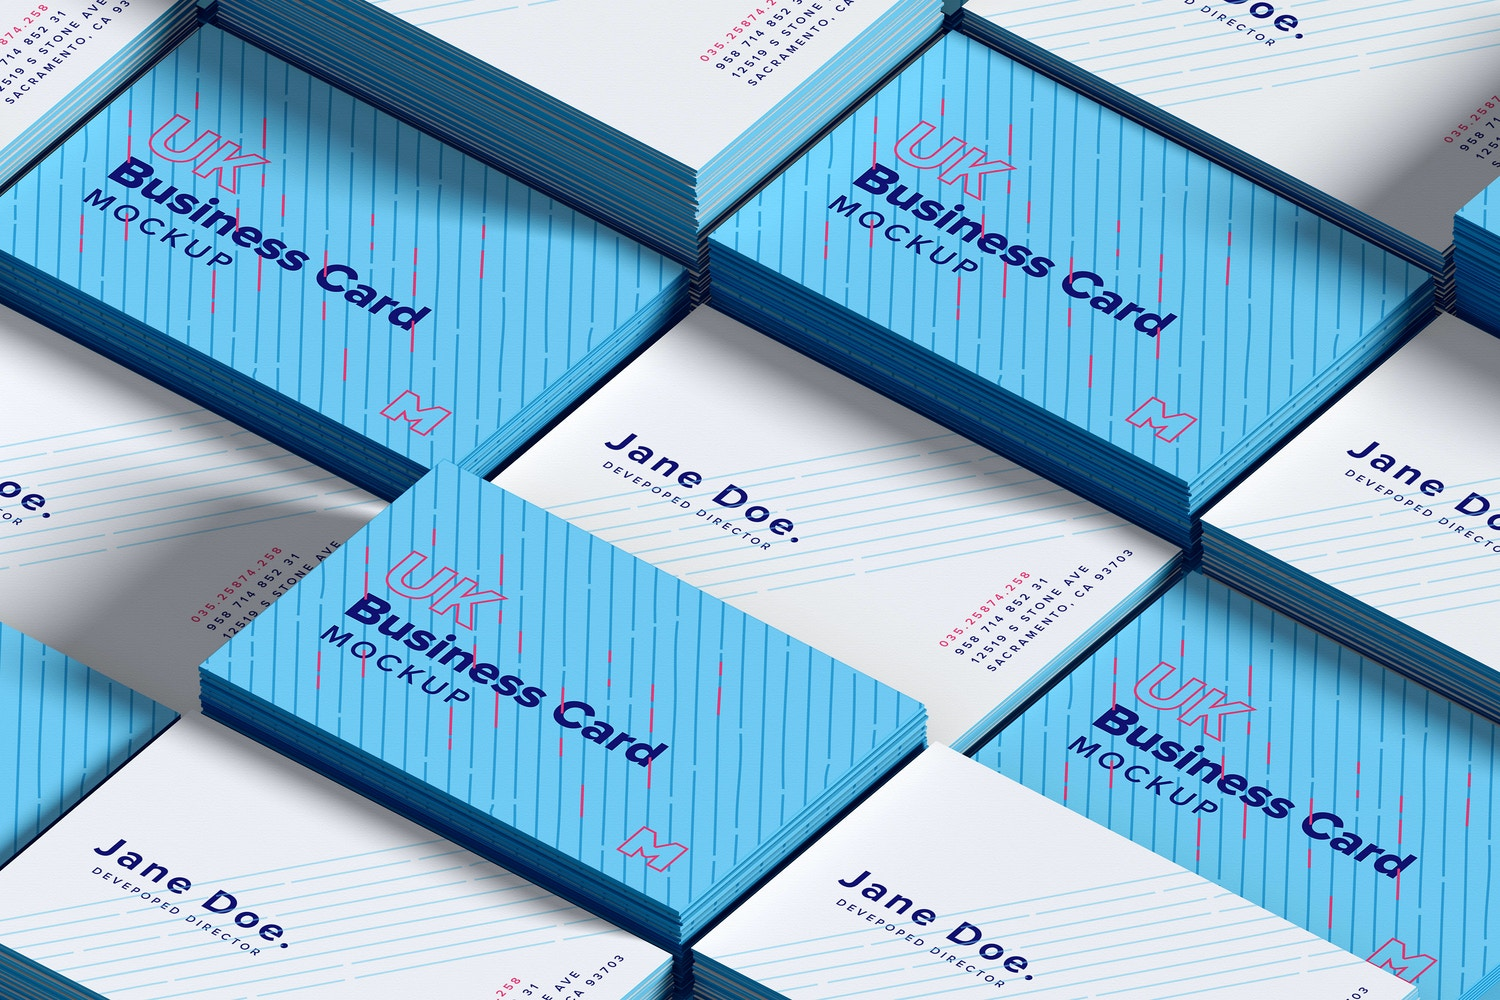 UK Business Cards Mockup 01 by Original Mockups on Original Mockups